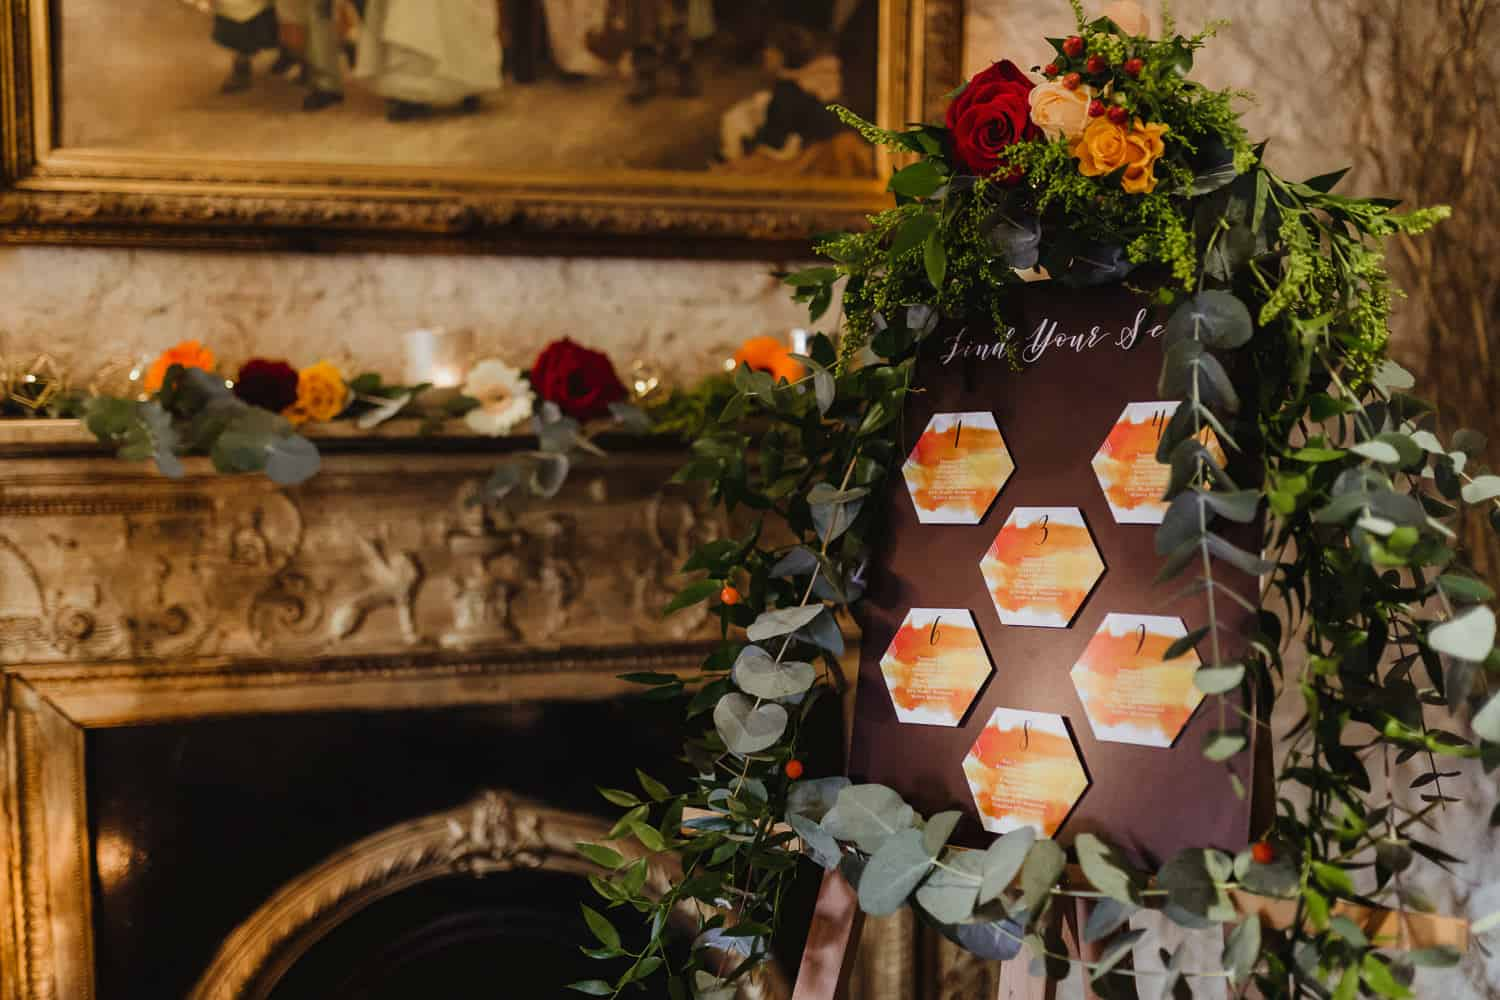 wedding table seating plan decorated with flowers